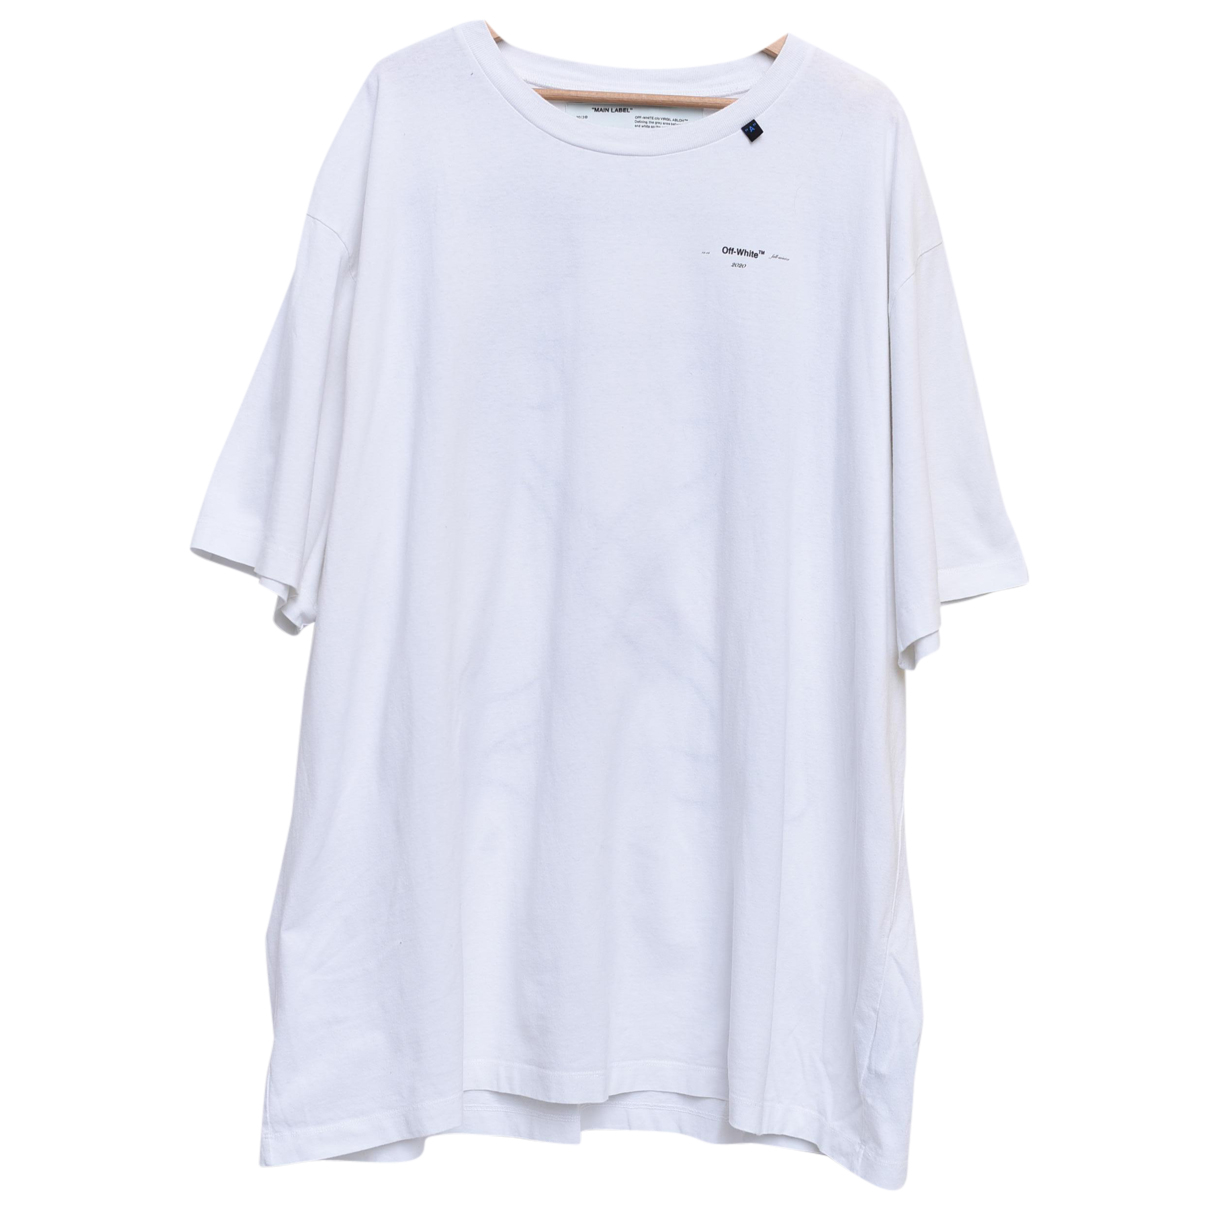 Off-white N White Cotton T-shirts for Men XL International